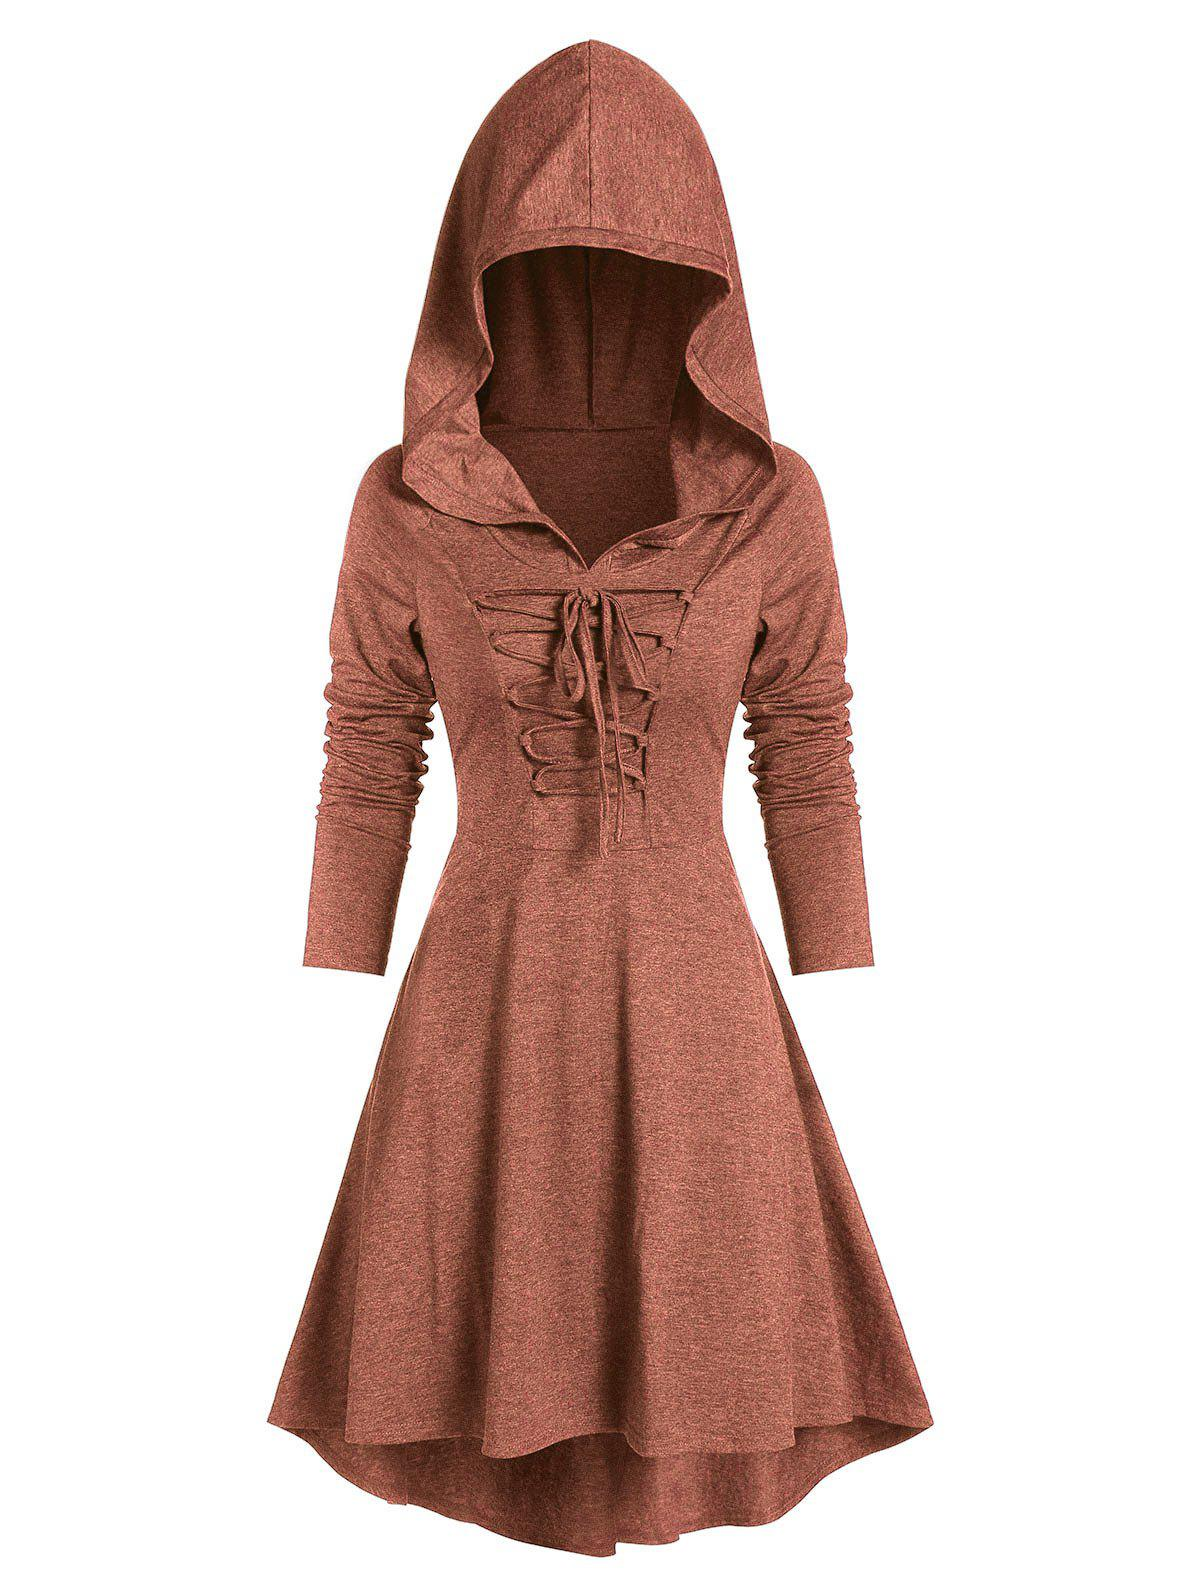 Lace-up High Low Hooded Heathered Gothic Dress, Tiger orange